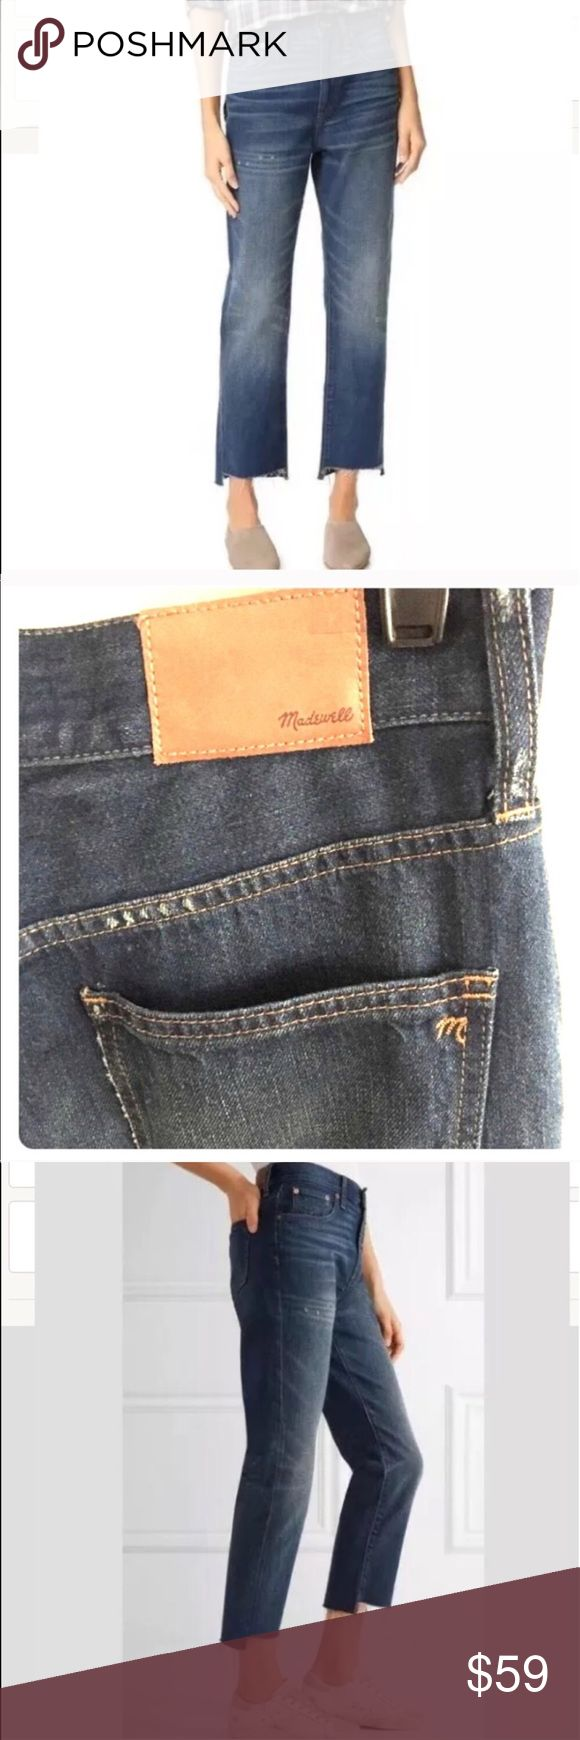 ⭐️ Madewell The Perfect Vintage Jean New A '90s-chic high rise and frayed step hems define vintage-inspired jeans cut with a cool relaxed fit.  MSRP $128   Can be used with the frayed hem (as pictured) or can be fold up.   -back rise  - Zip fly with button closure  - Five-pocket style  - 100% cotton Madewell Jeans